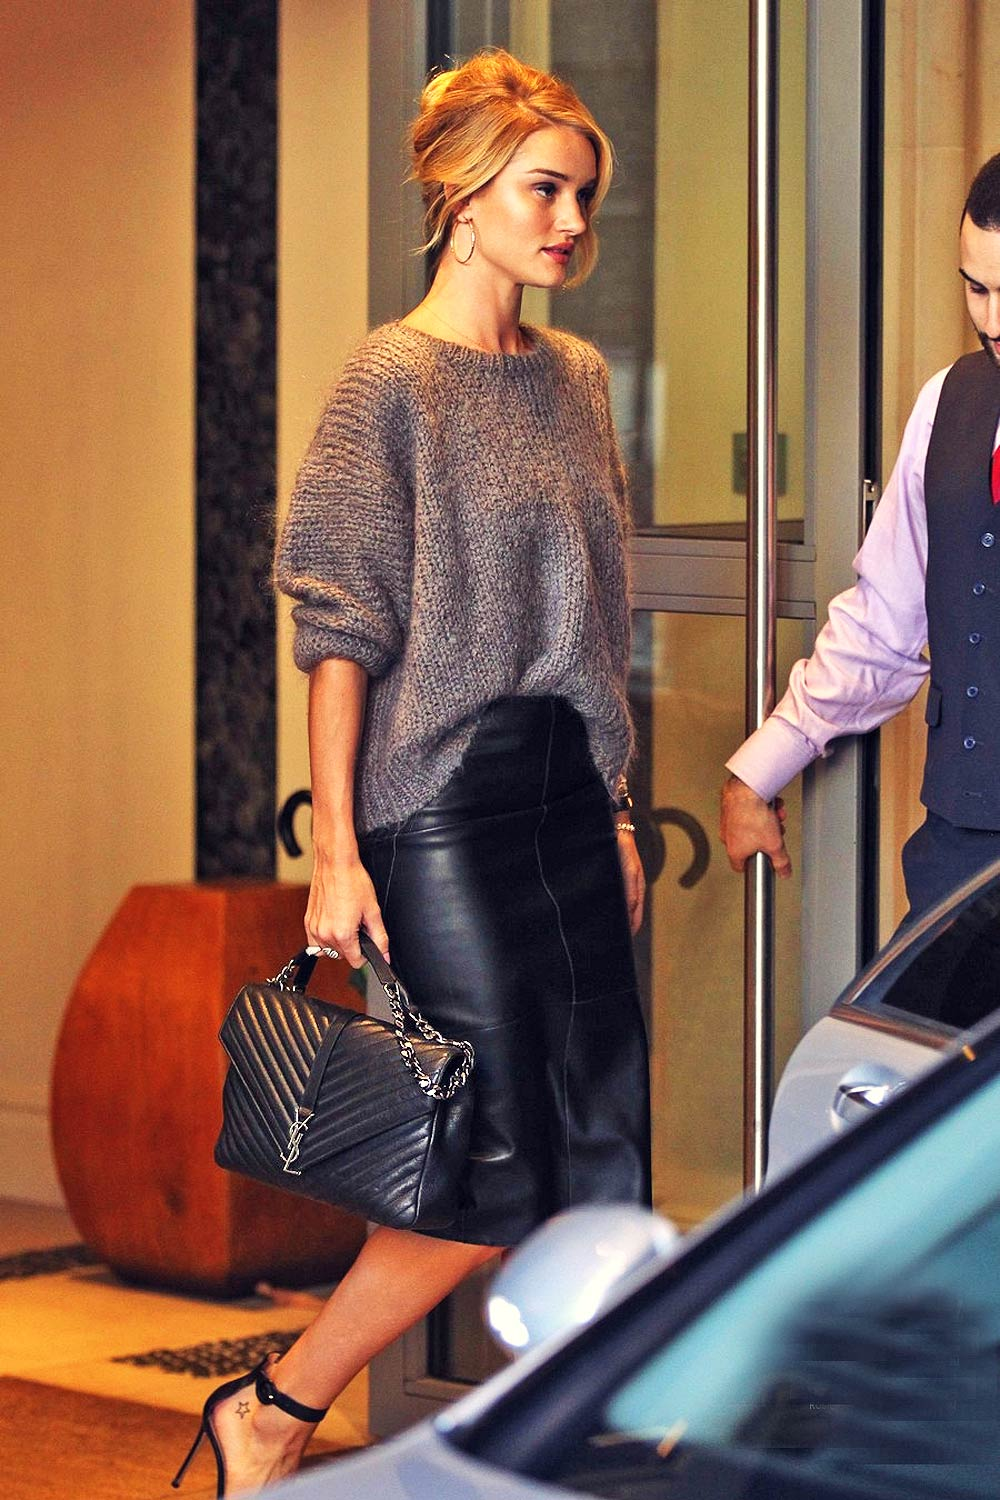 Rosie Huntington Whiteley out and about in London